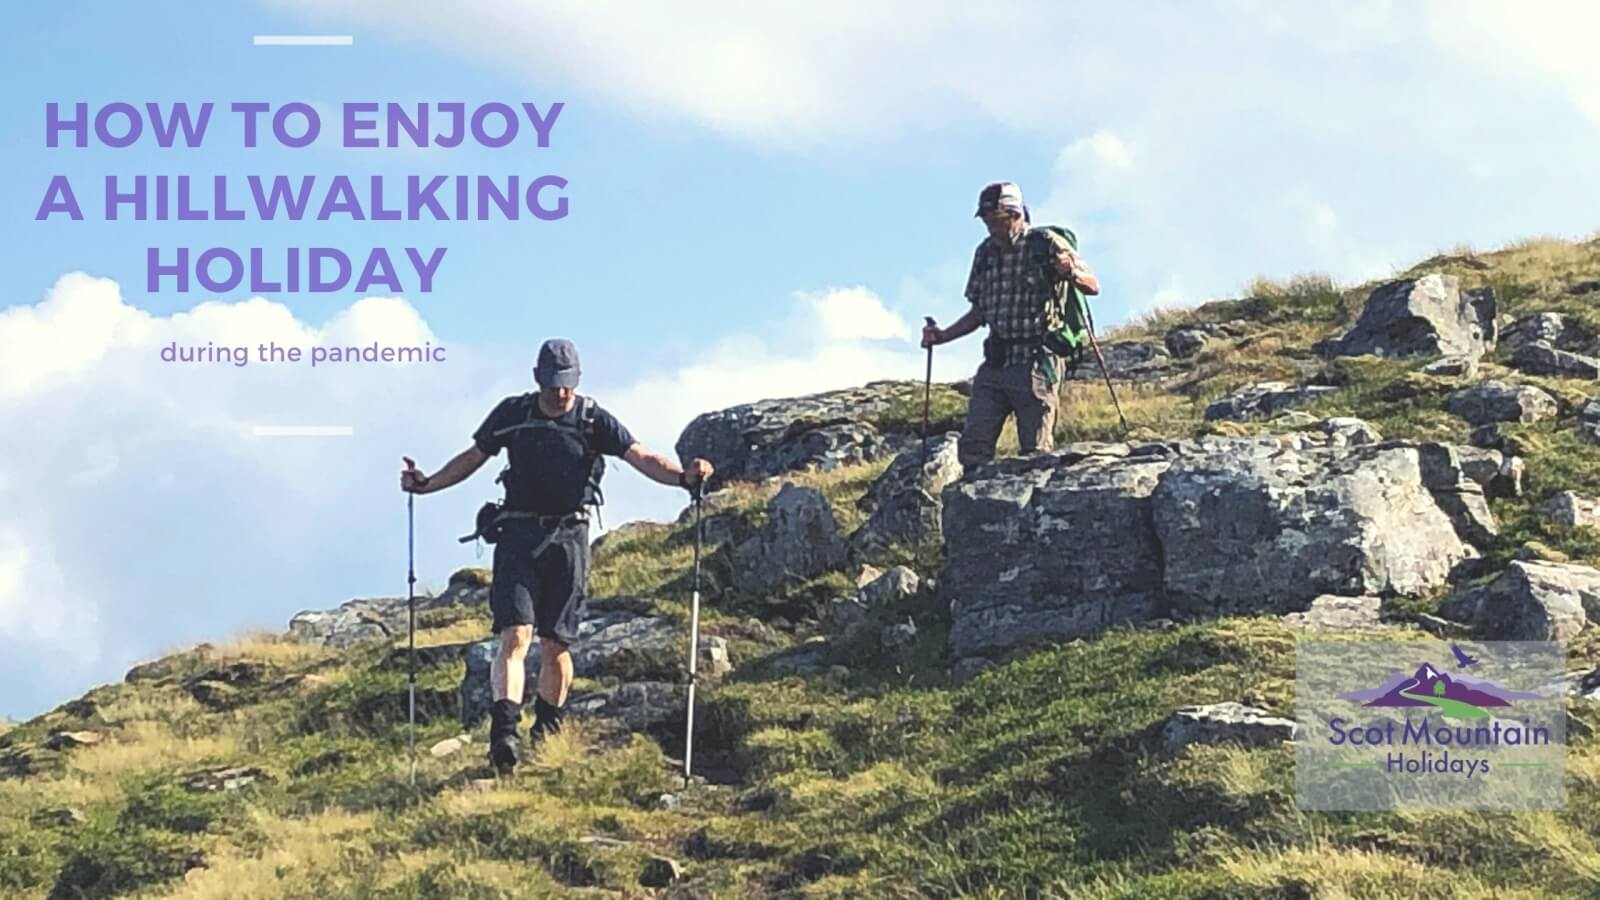 hillwalking holidays